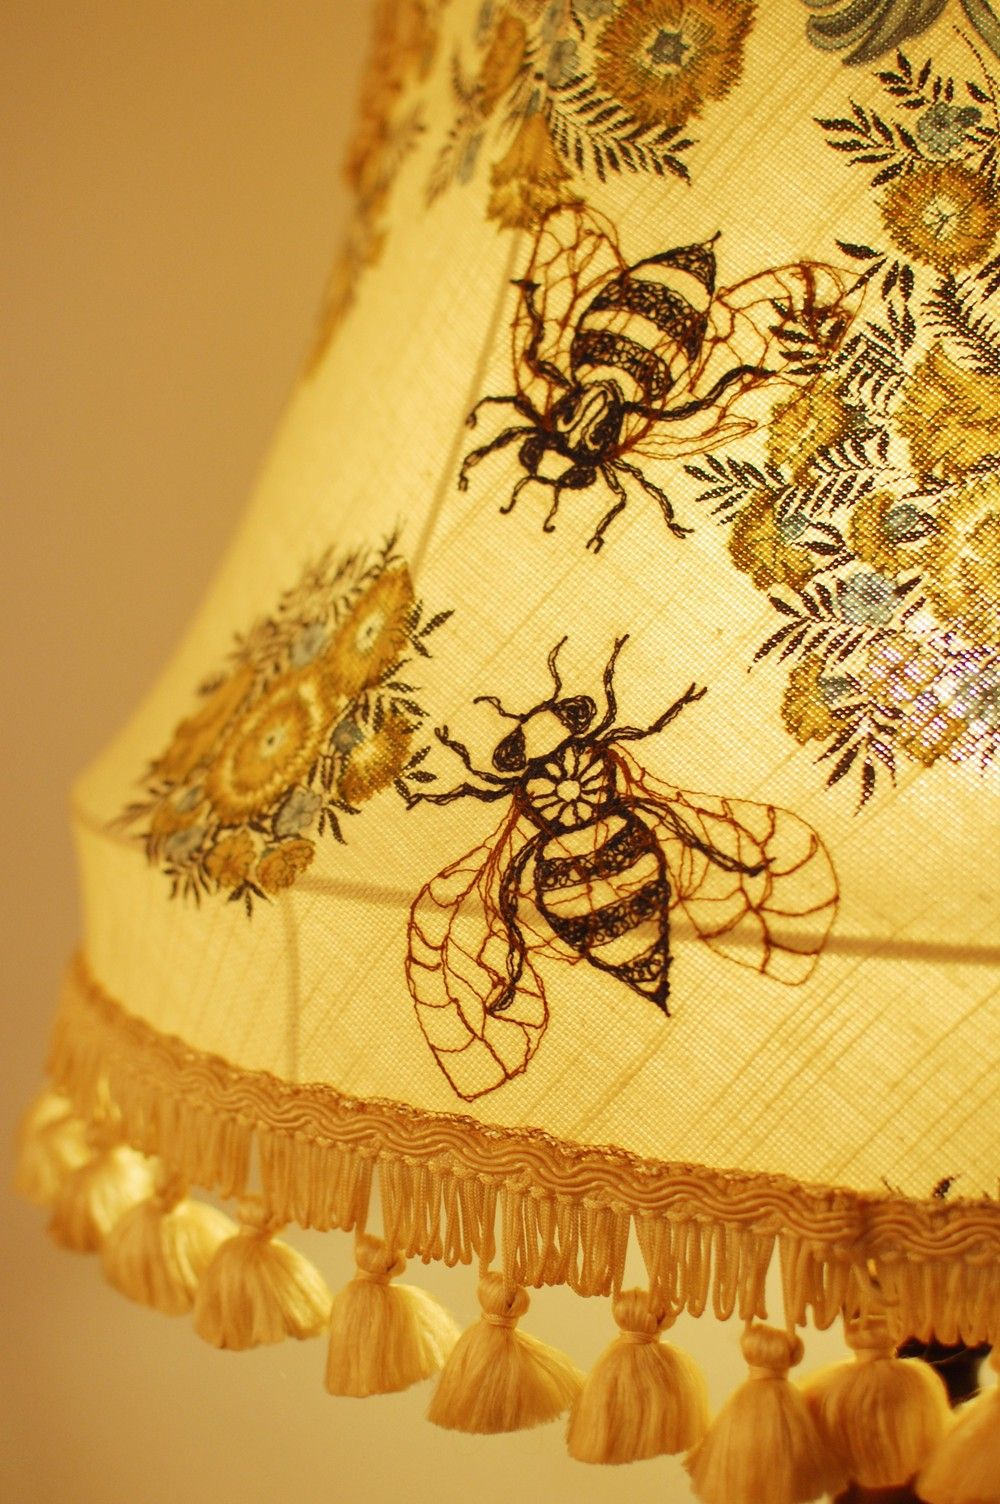 Pin By Caroline French On Unusual Artisan And Designer Lighting Lampshades Bee Decor Bee Inspired